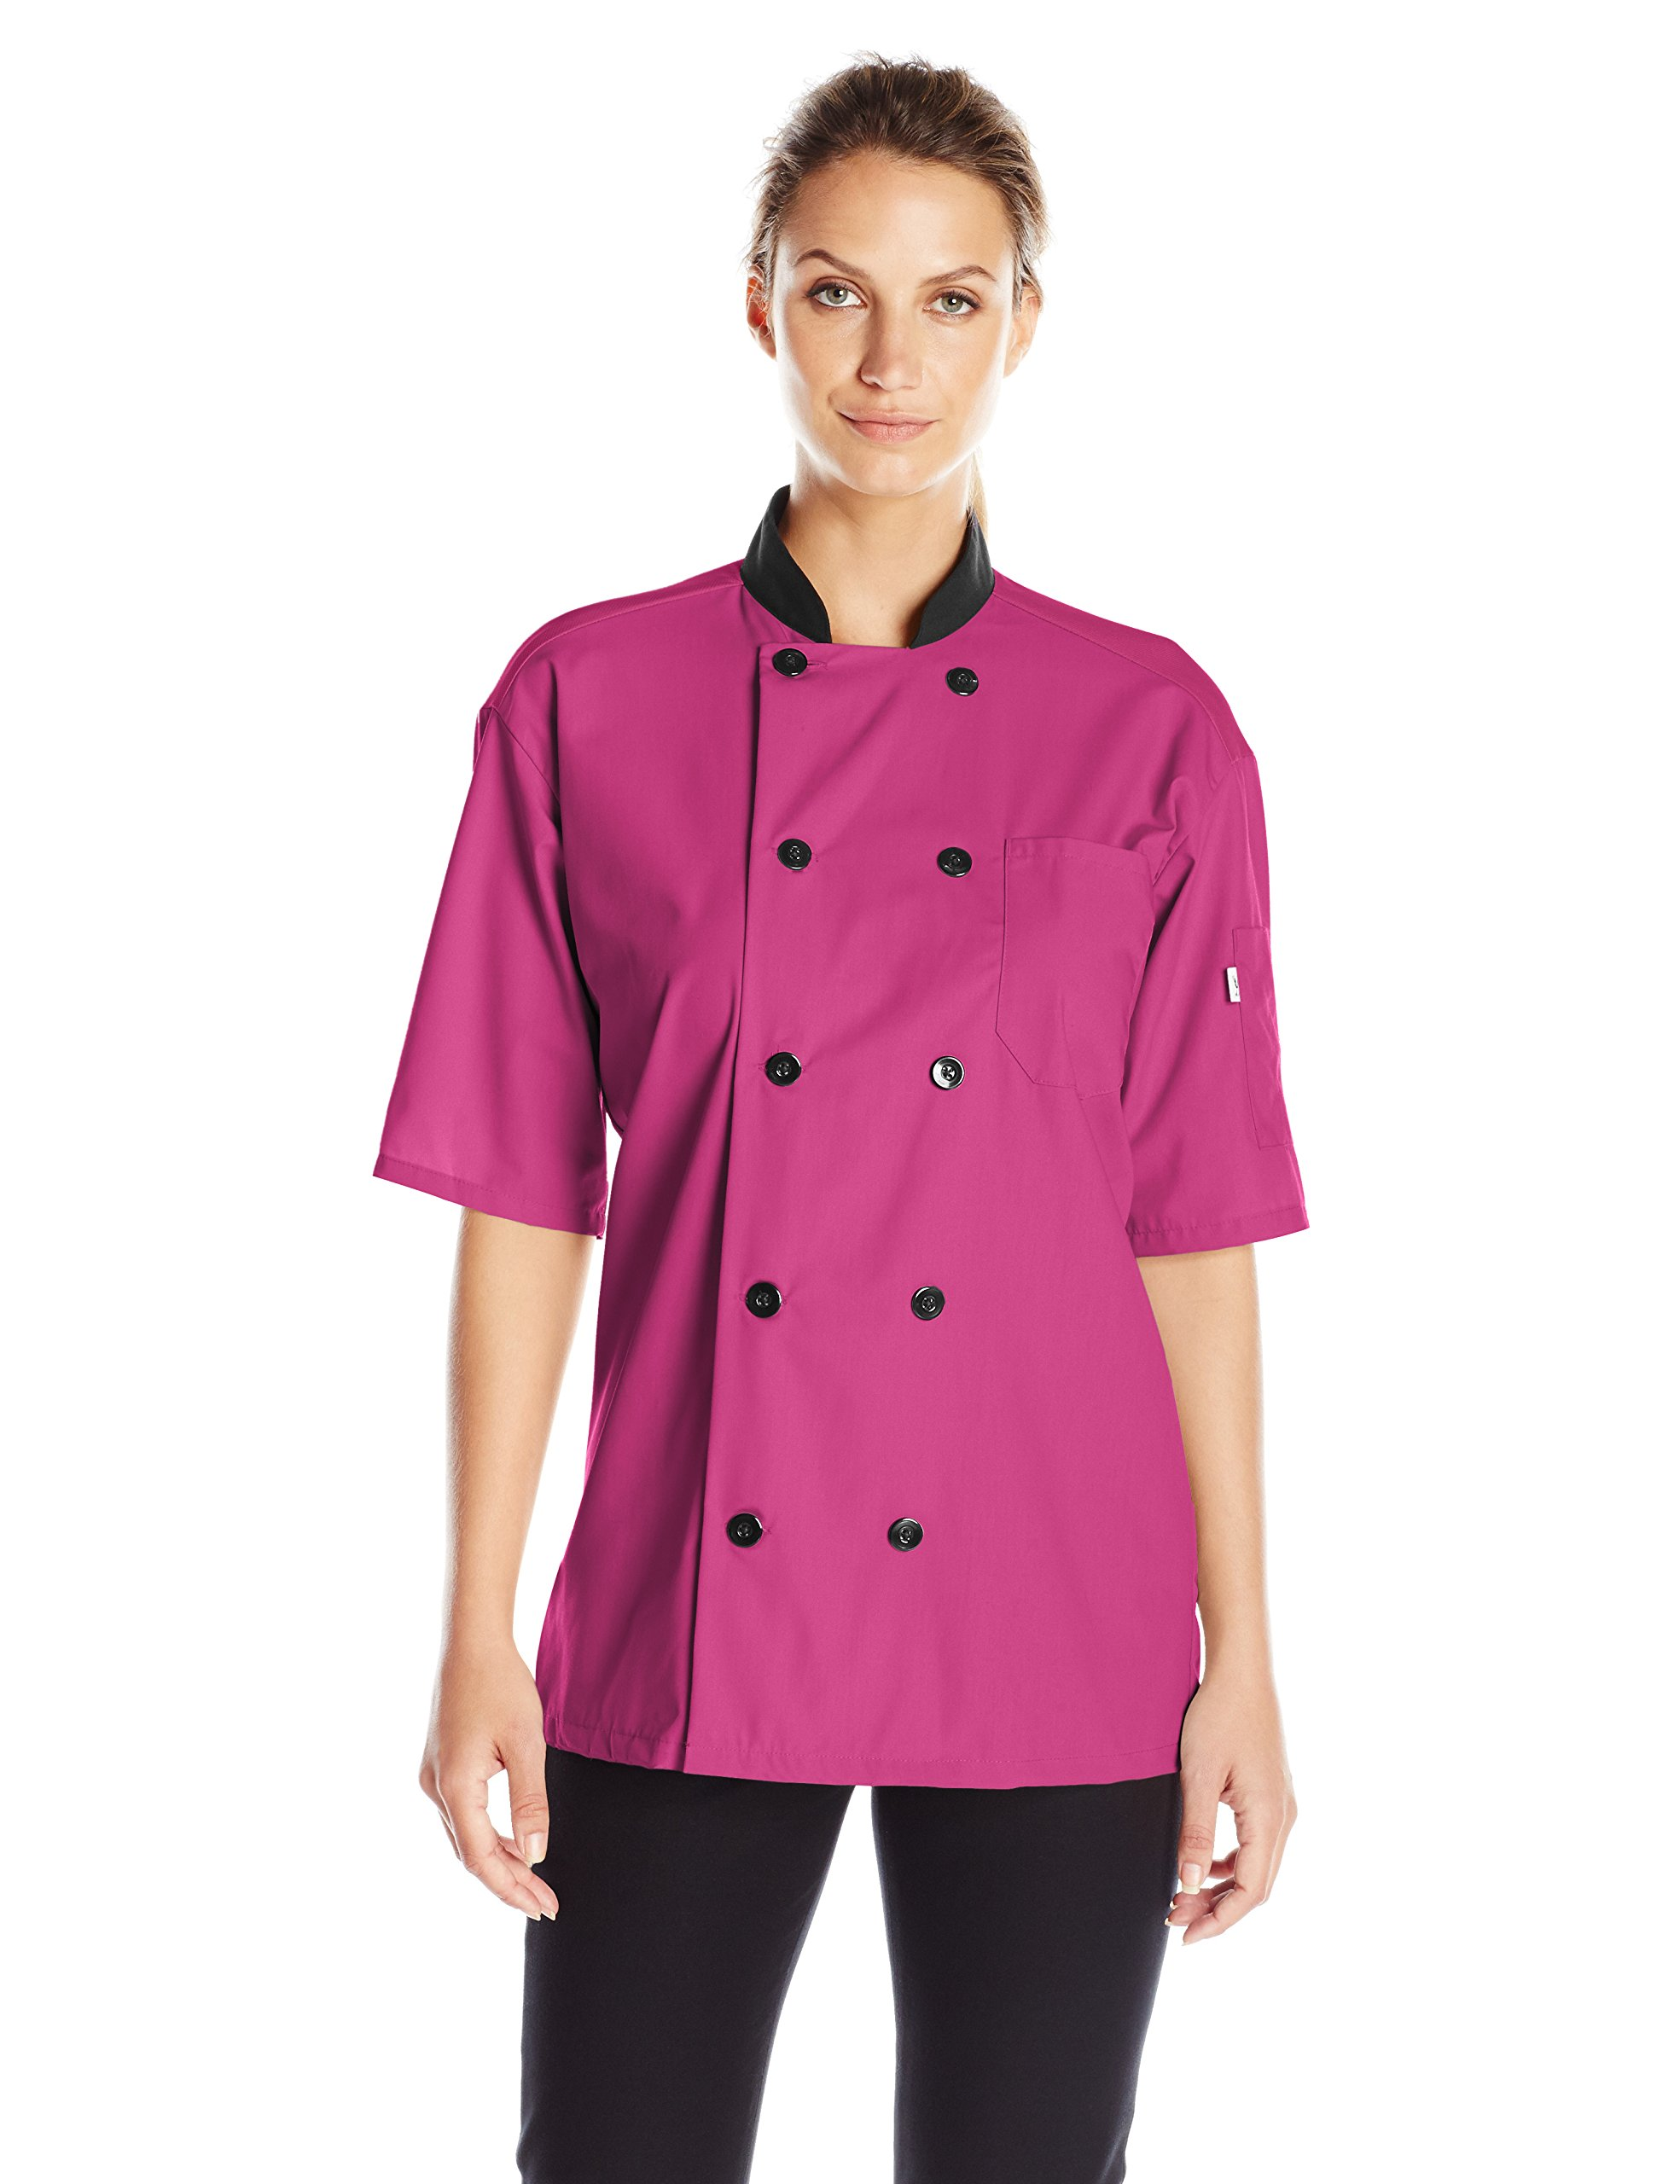 Uncommon Threads Unisex Havana Chef Coat Ss Mesh Blk TRM, Berry, Small